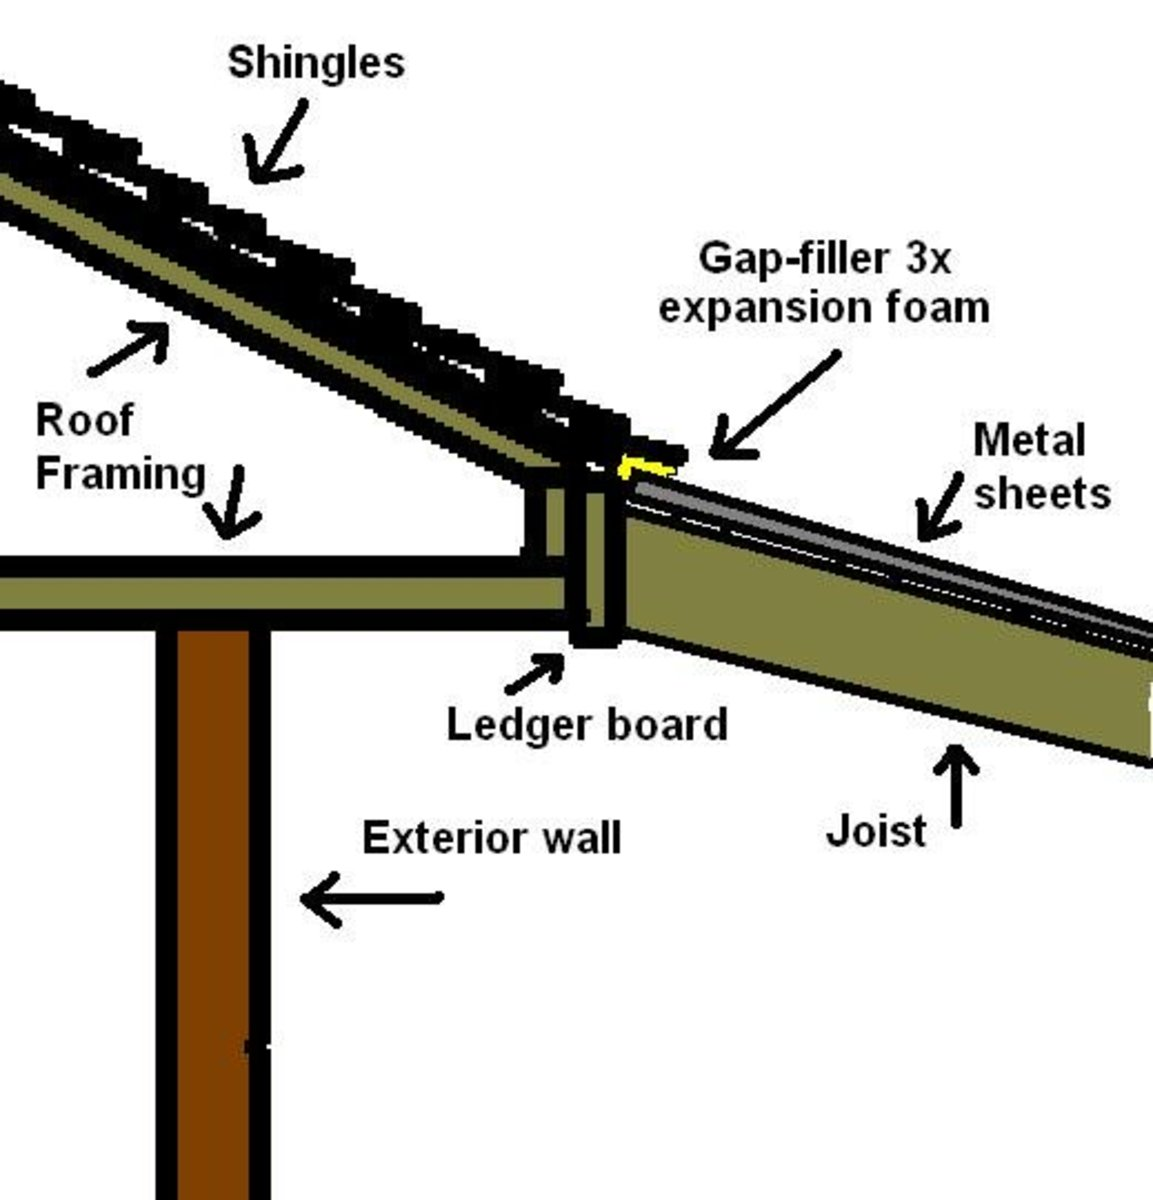 More Detail About Joining The Patio Cover To The Existing Roof.